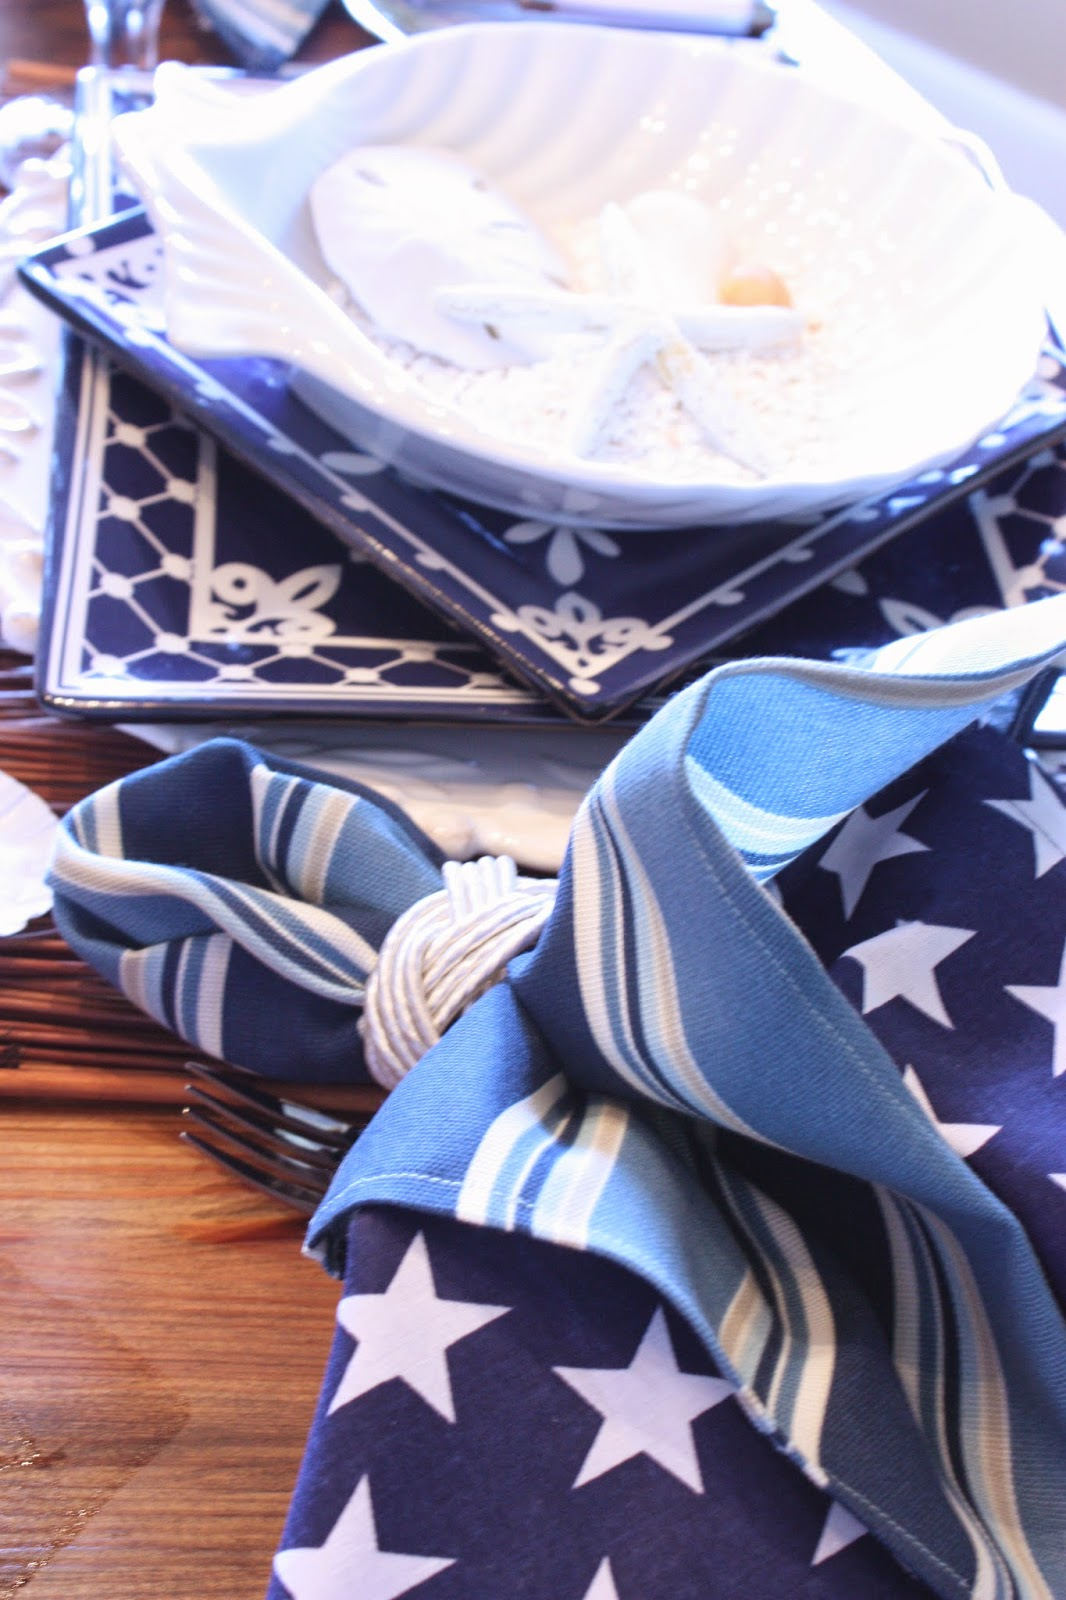 Superb This Nautical Table With Itu0027s Clean Lines Benefits From A Bit Of Fluff The  Double Napkins Bring!